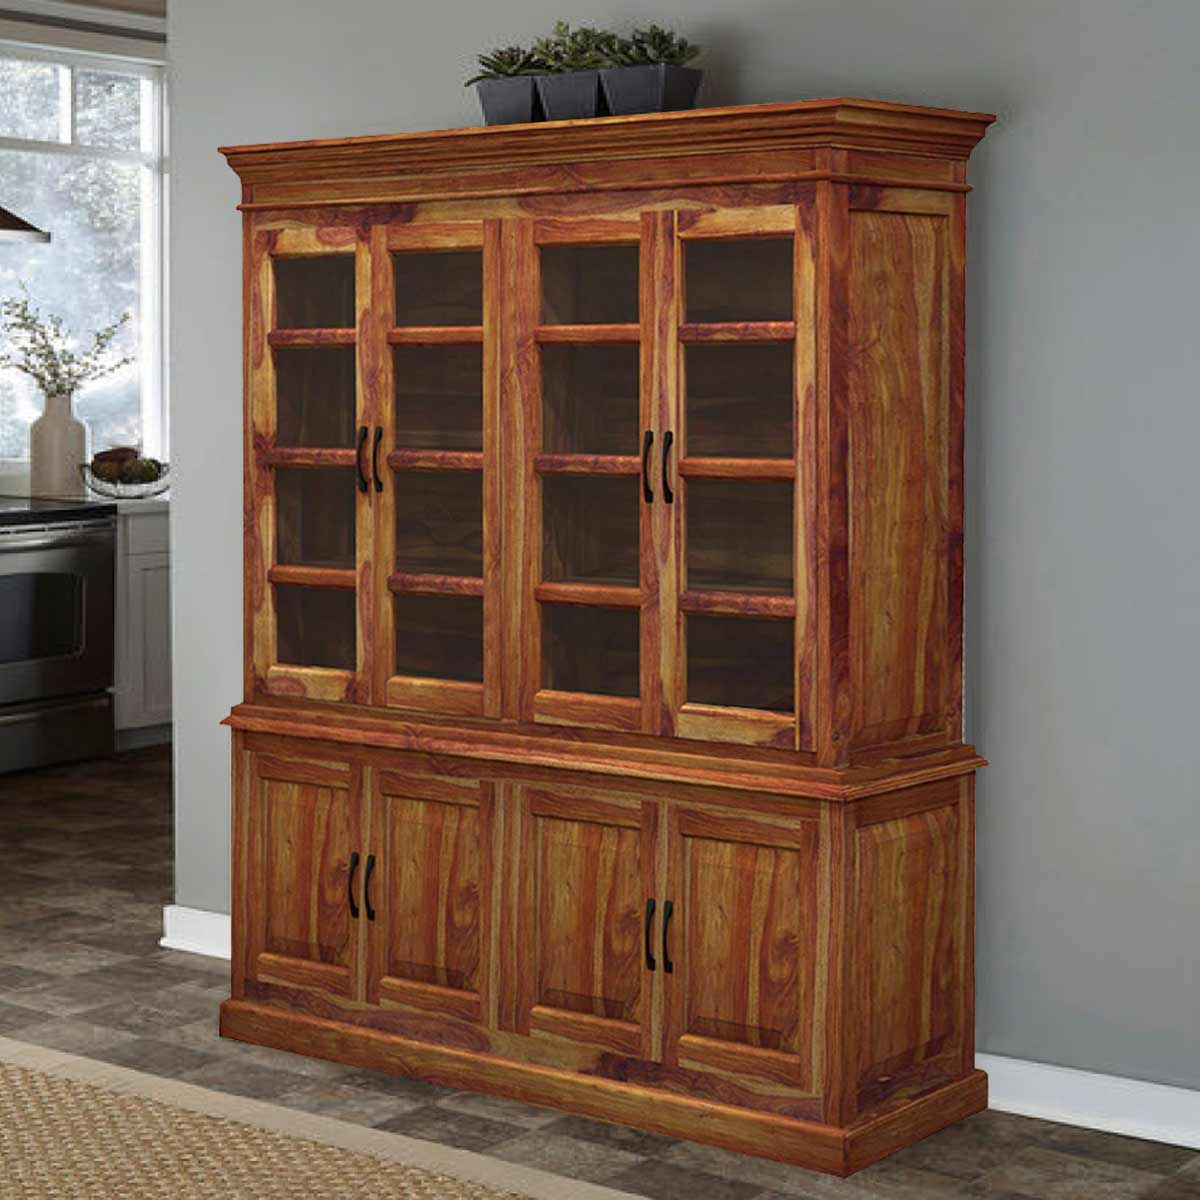 Rustic Kitchen Hutch: Oklahoma Rustic Solid Wood Glass Door Large Kitchen Hutch